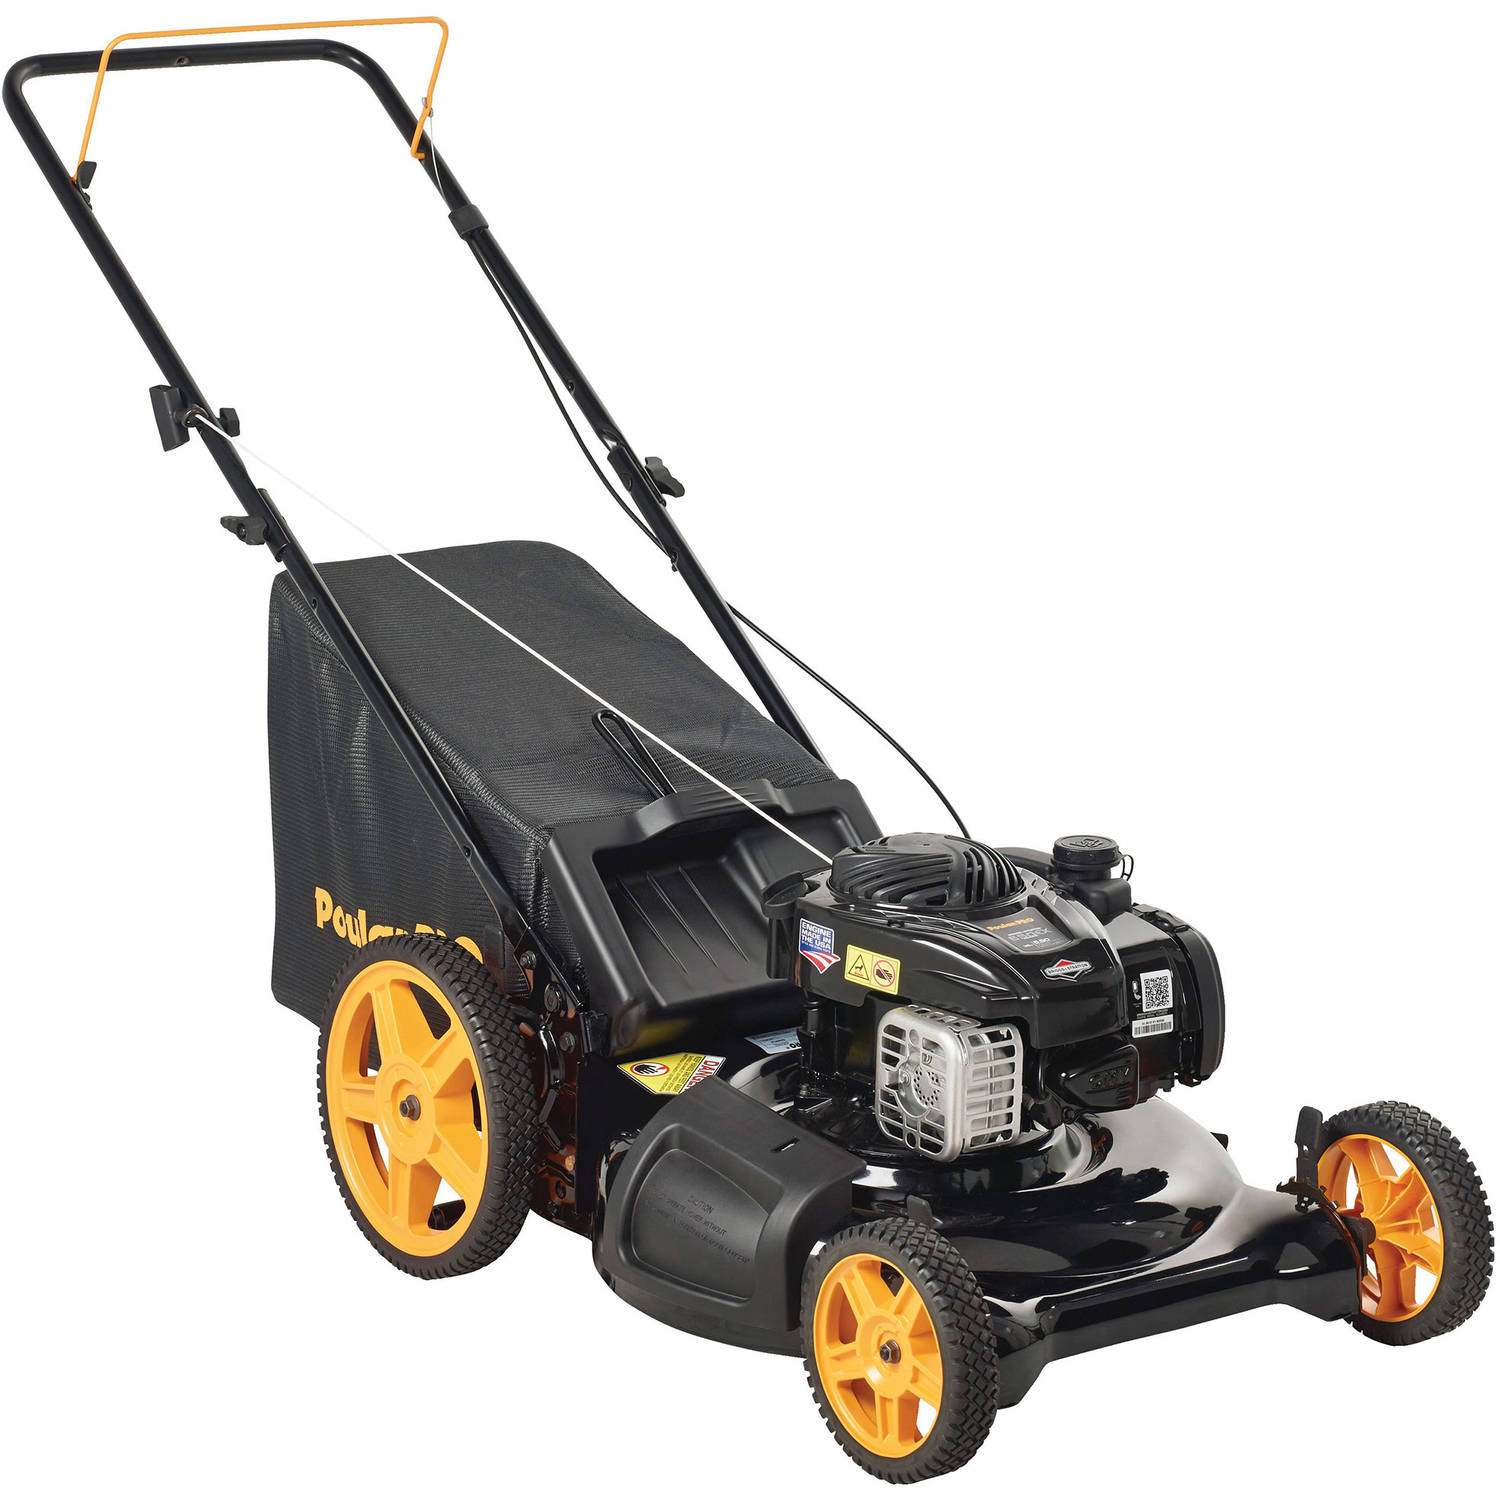 "Poulan Pro 21"" Gas High Rear Wheel Push Mower"